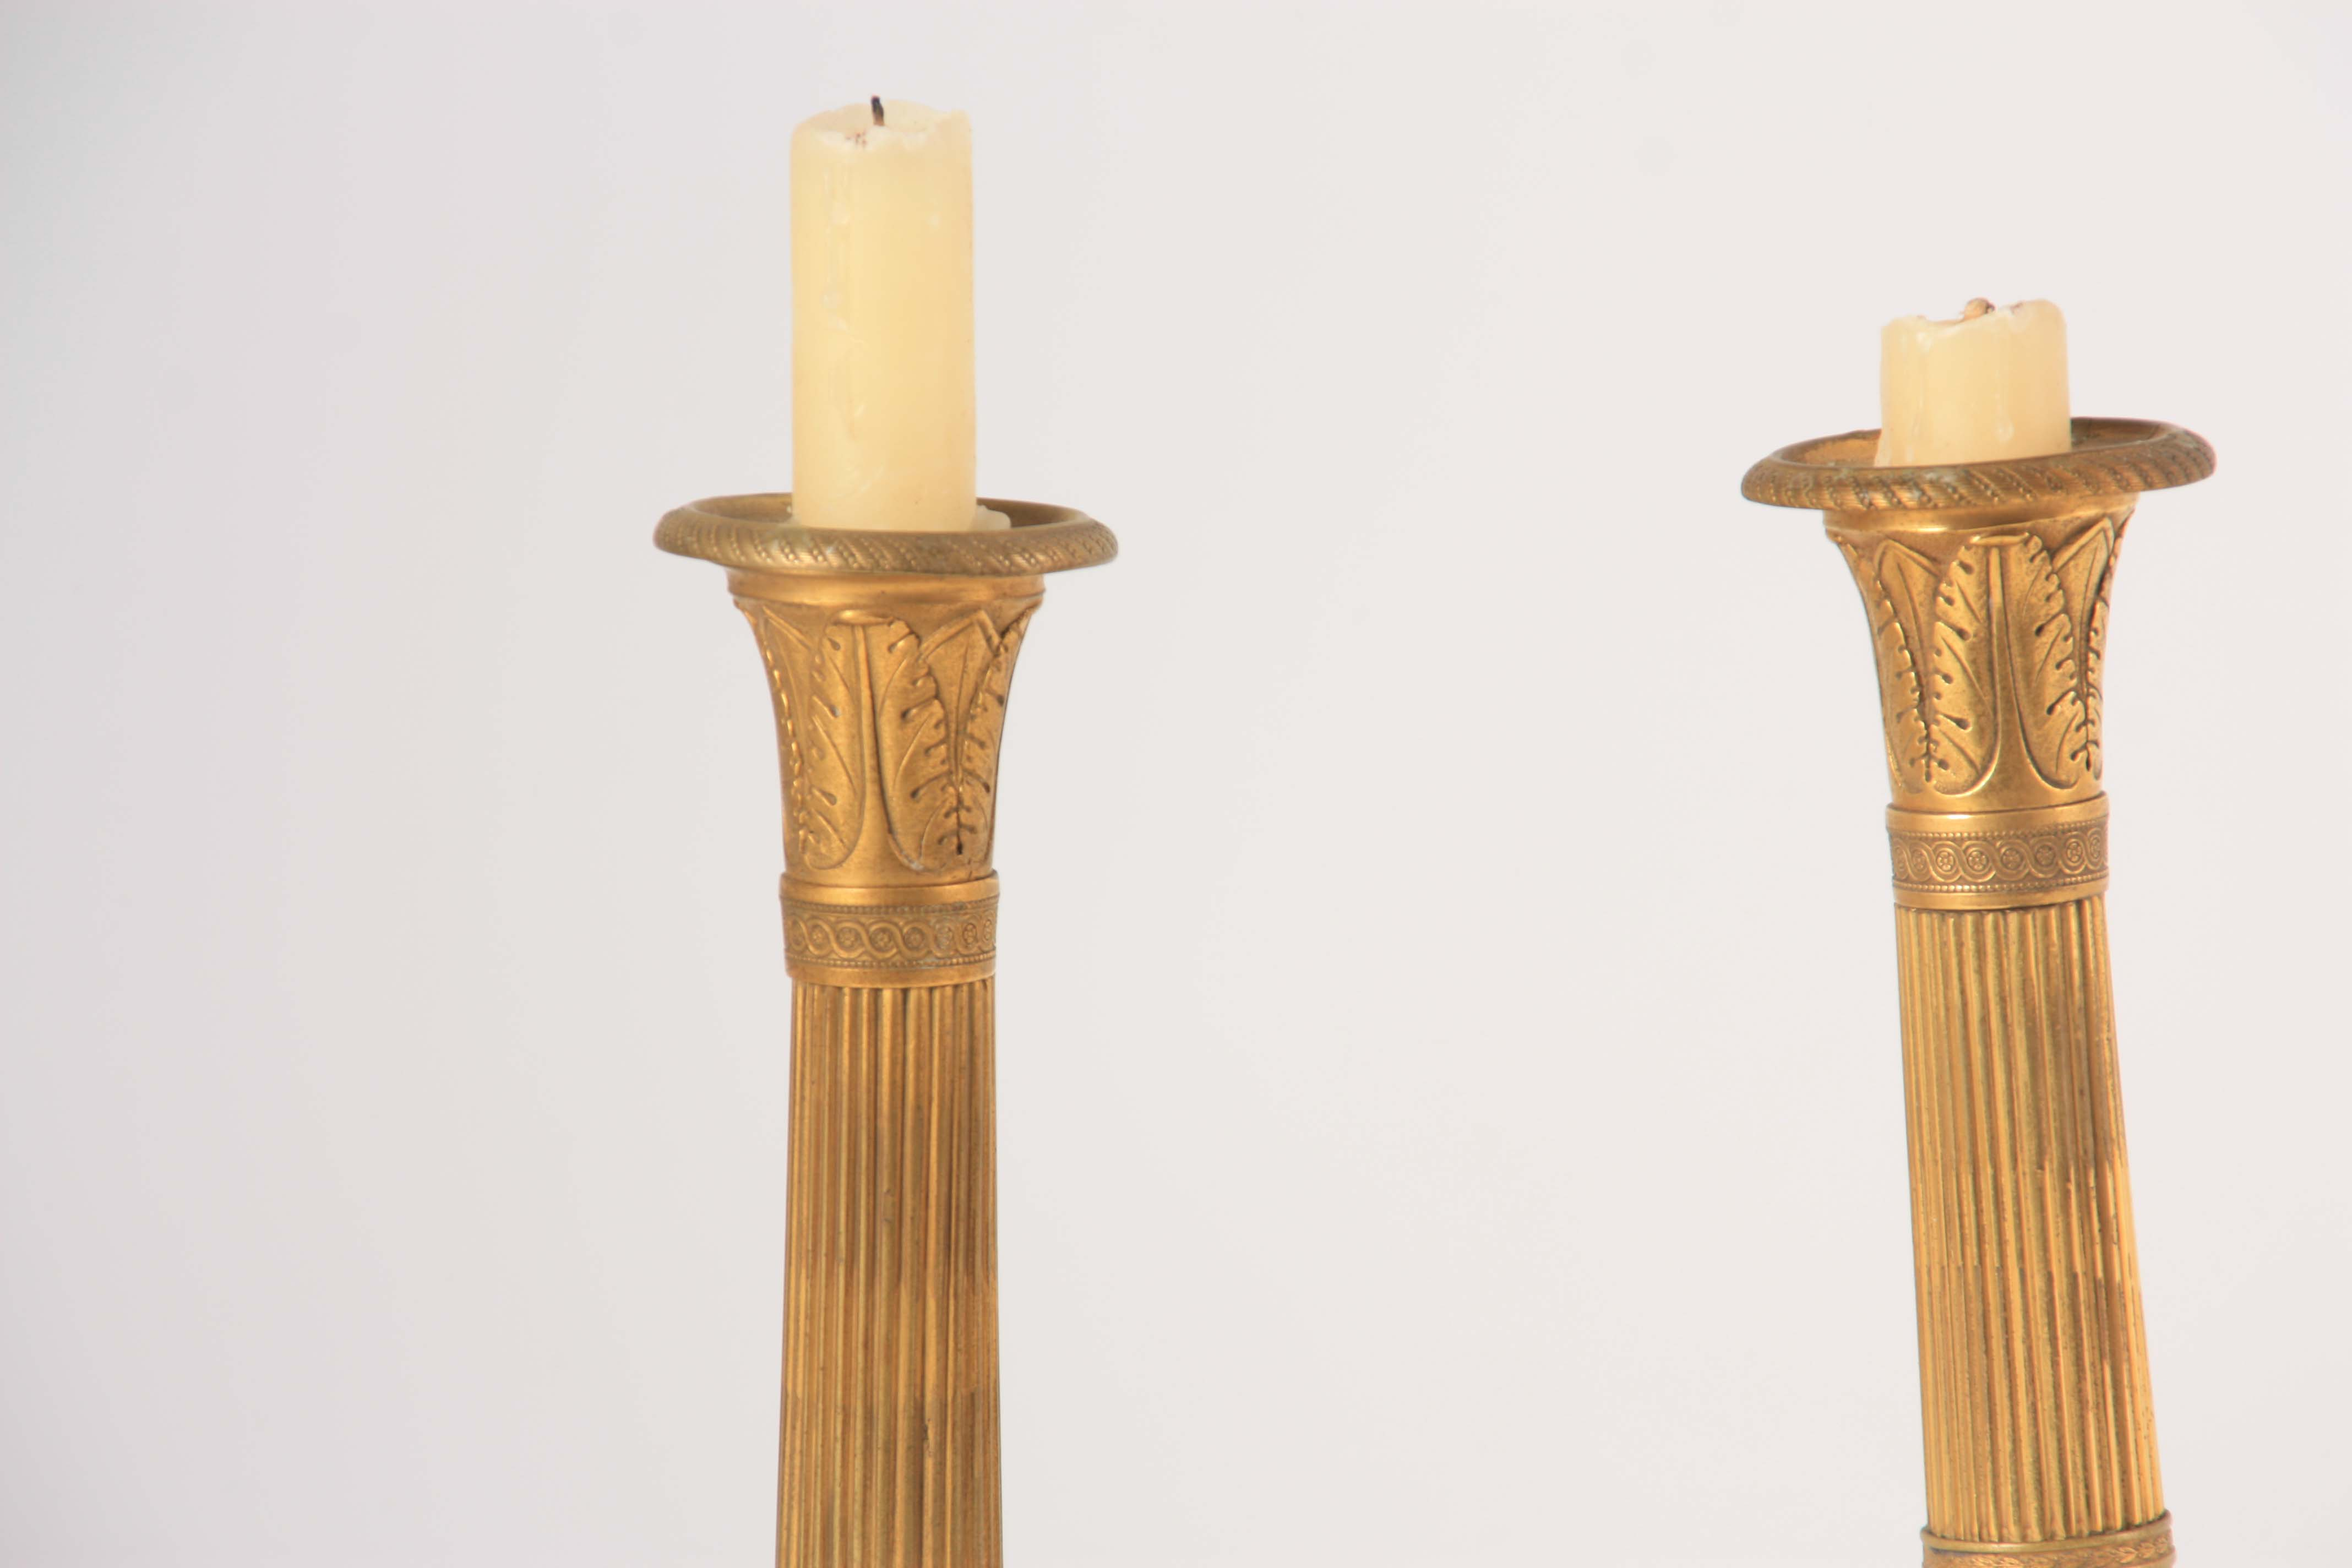 A PAIR OF 19TH CENTURY FRENCH EMPIRE GILT BRASS CANDLESTICKS of classical form with leaf cast scones - Image 2 of 4